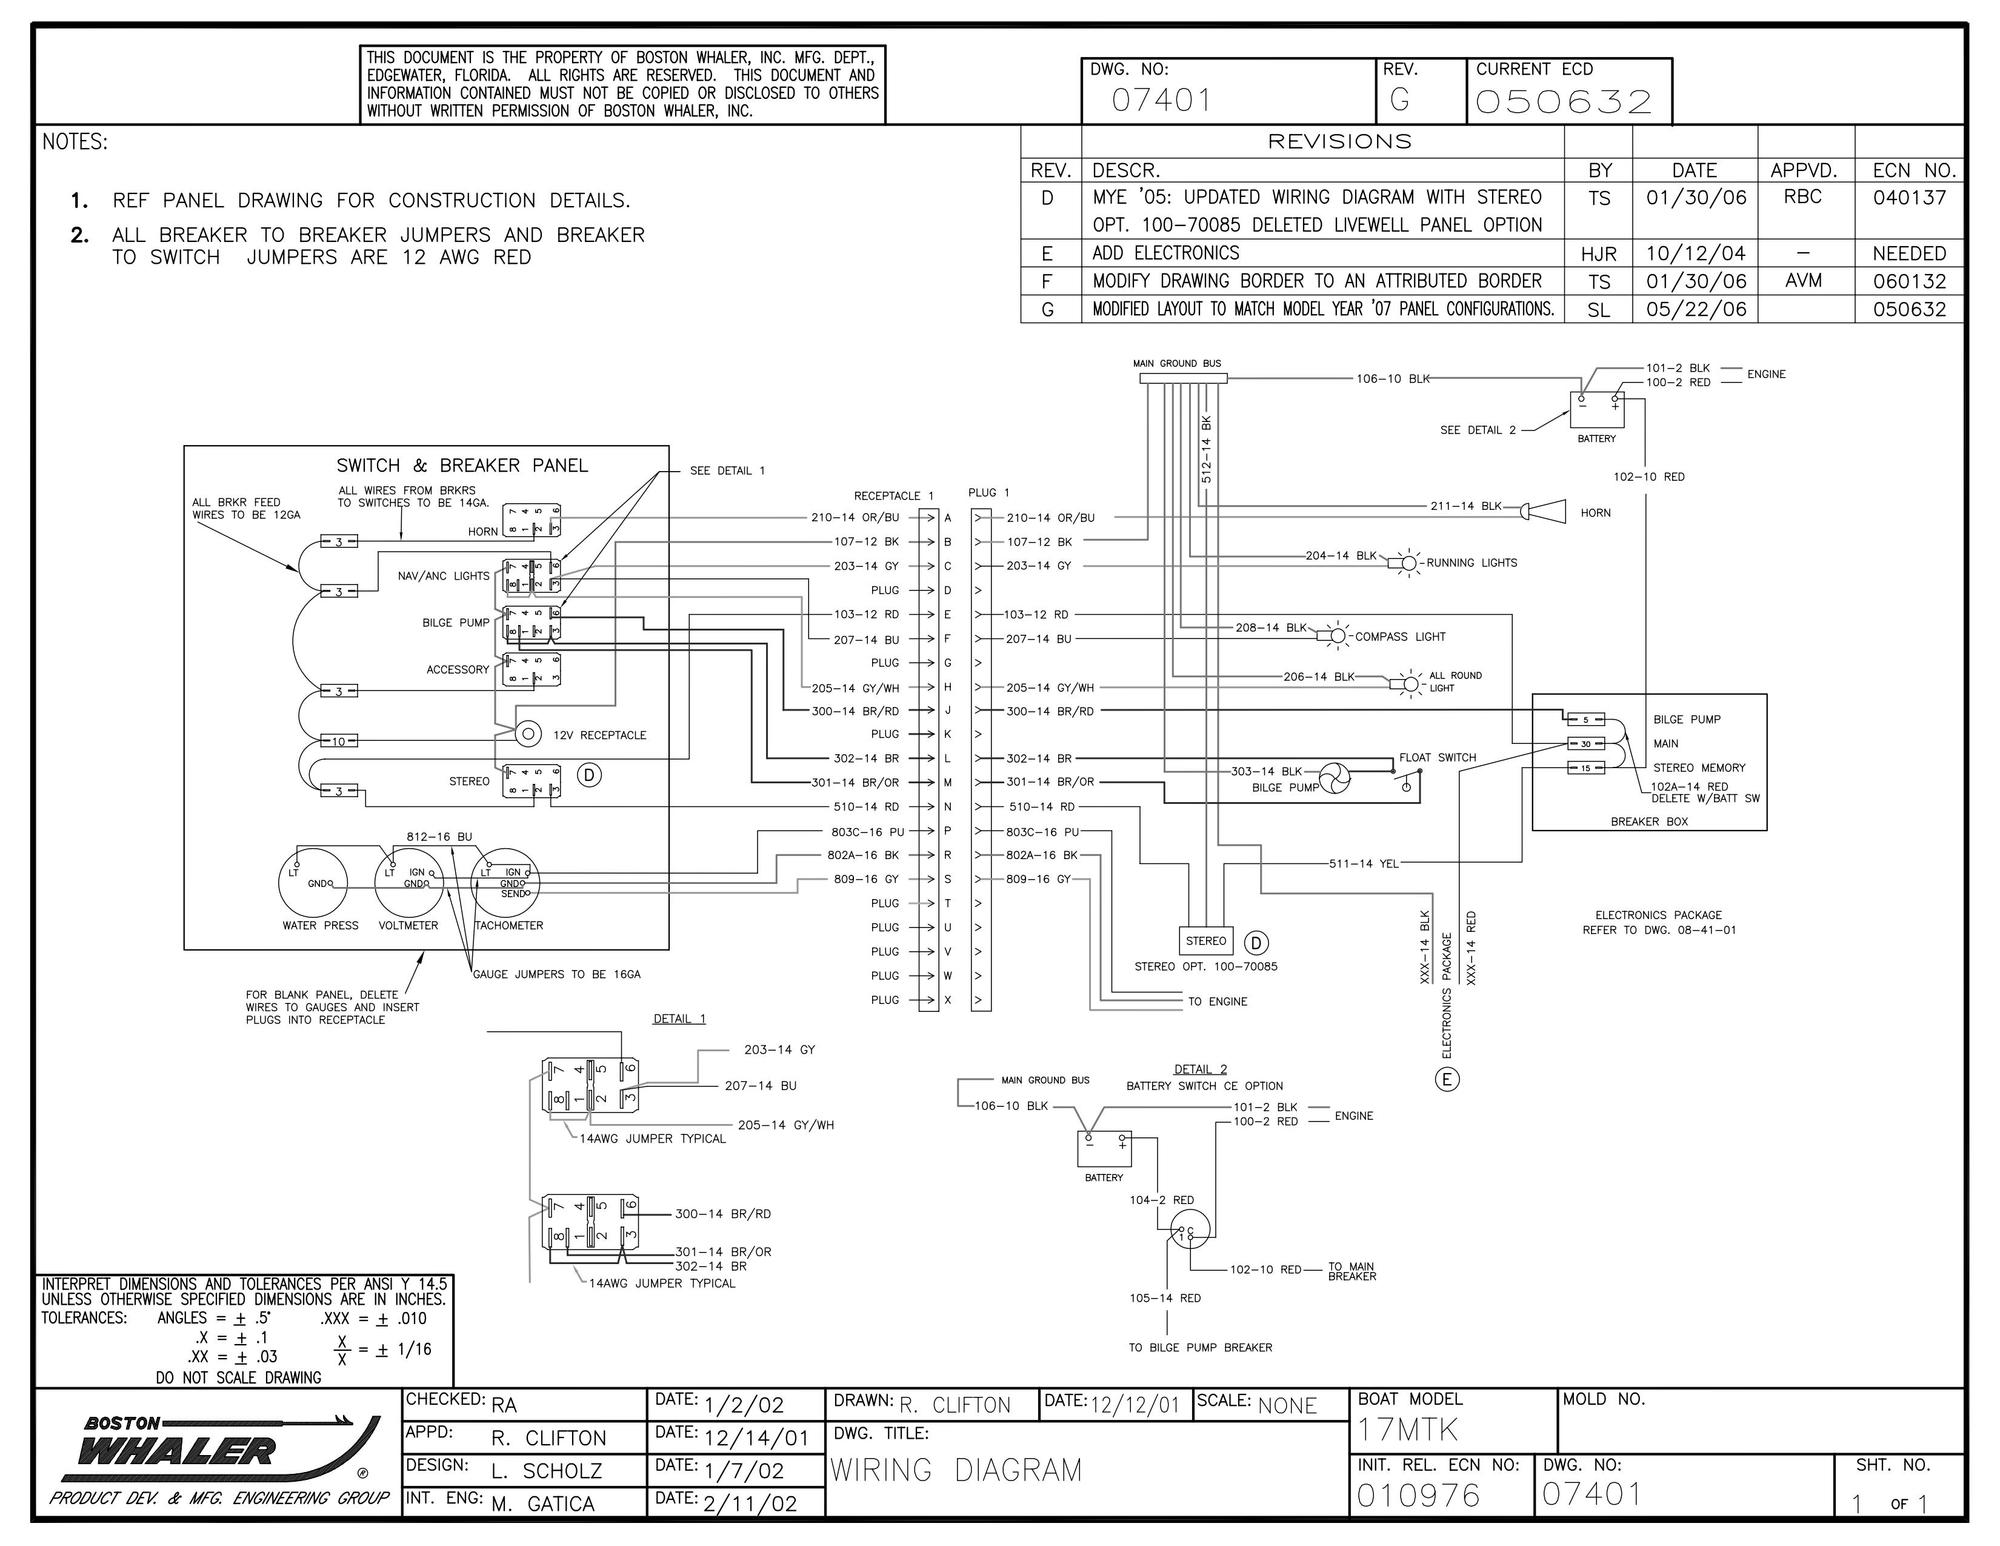 How Do I Use A Multimeter To Troubleshoot My Nav Switch